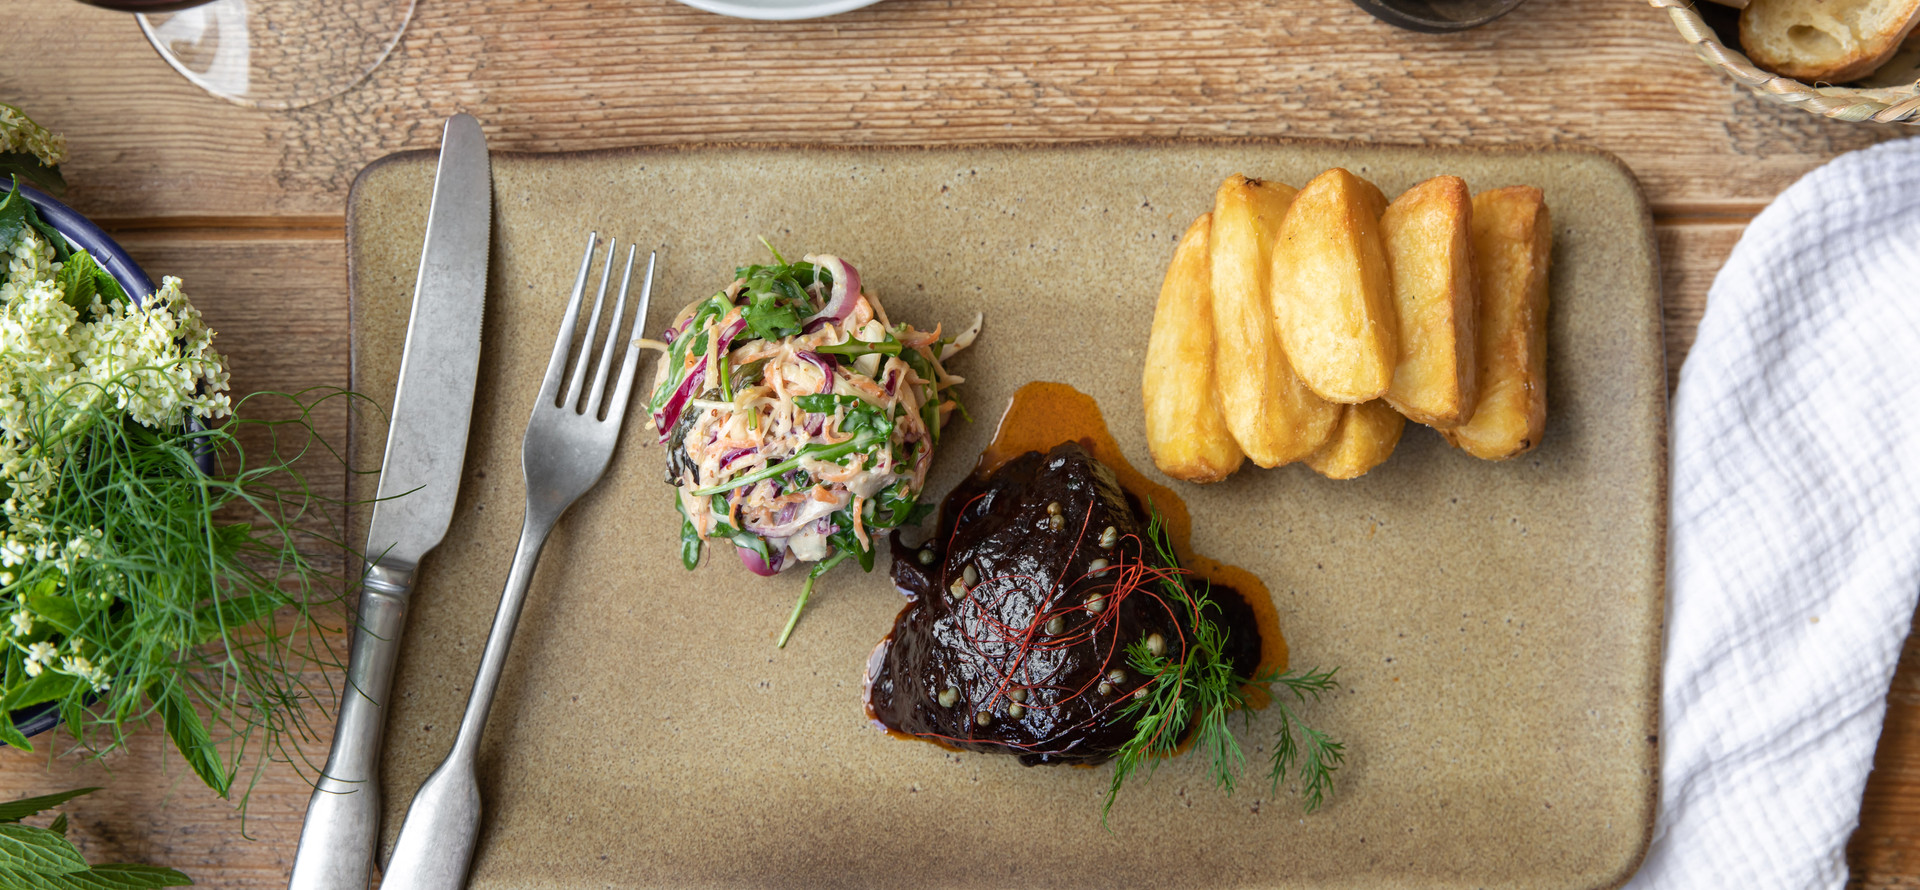 Beef Brisket and chips